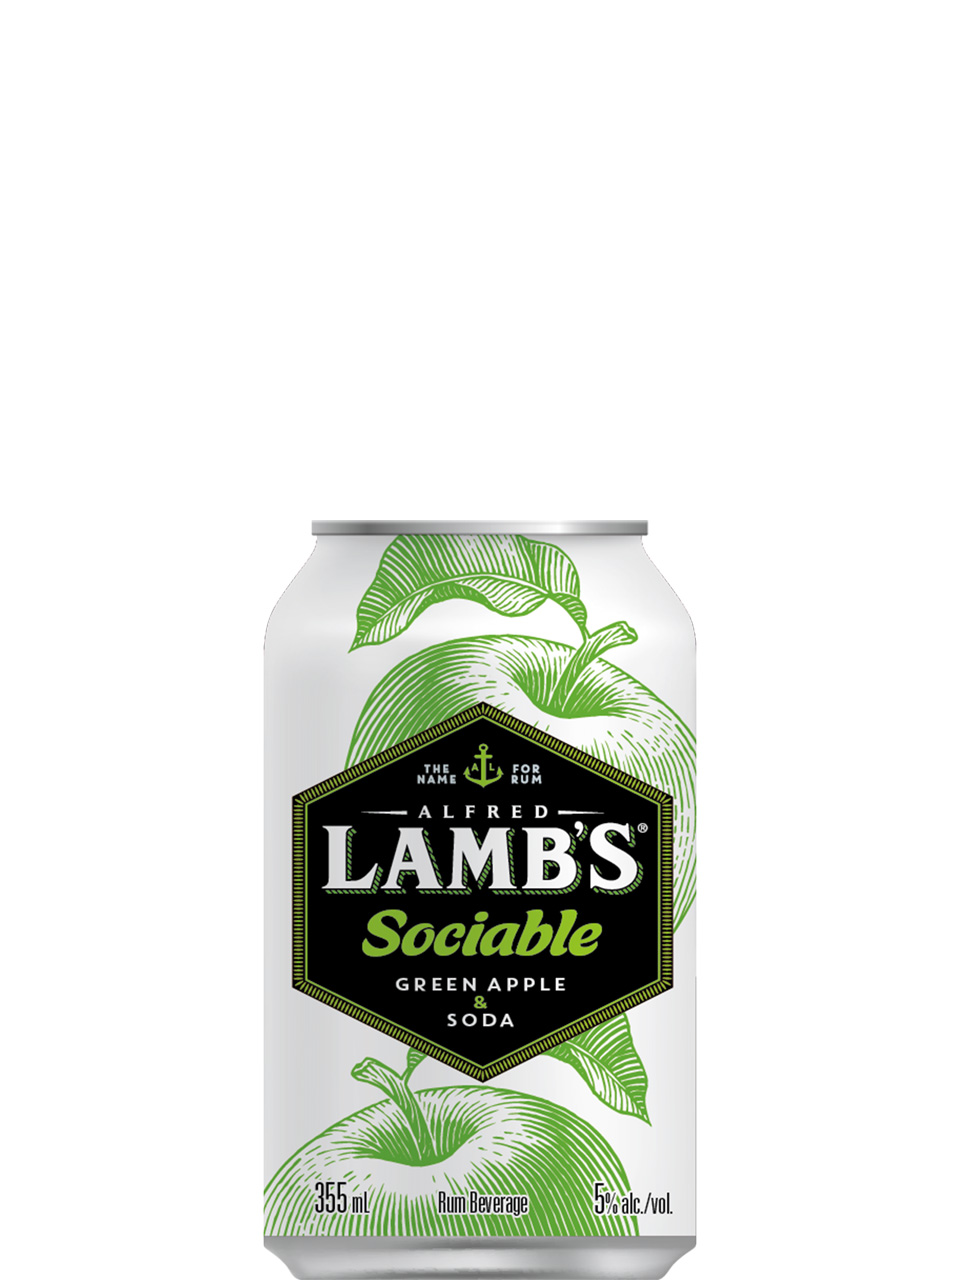 Lamb's Sociable Green Apple & Soda 6 Pack Cans